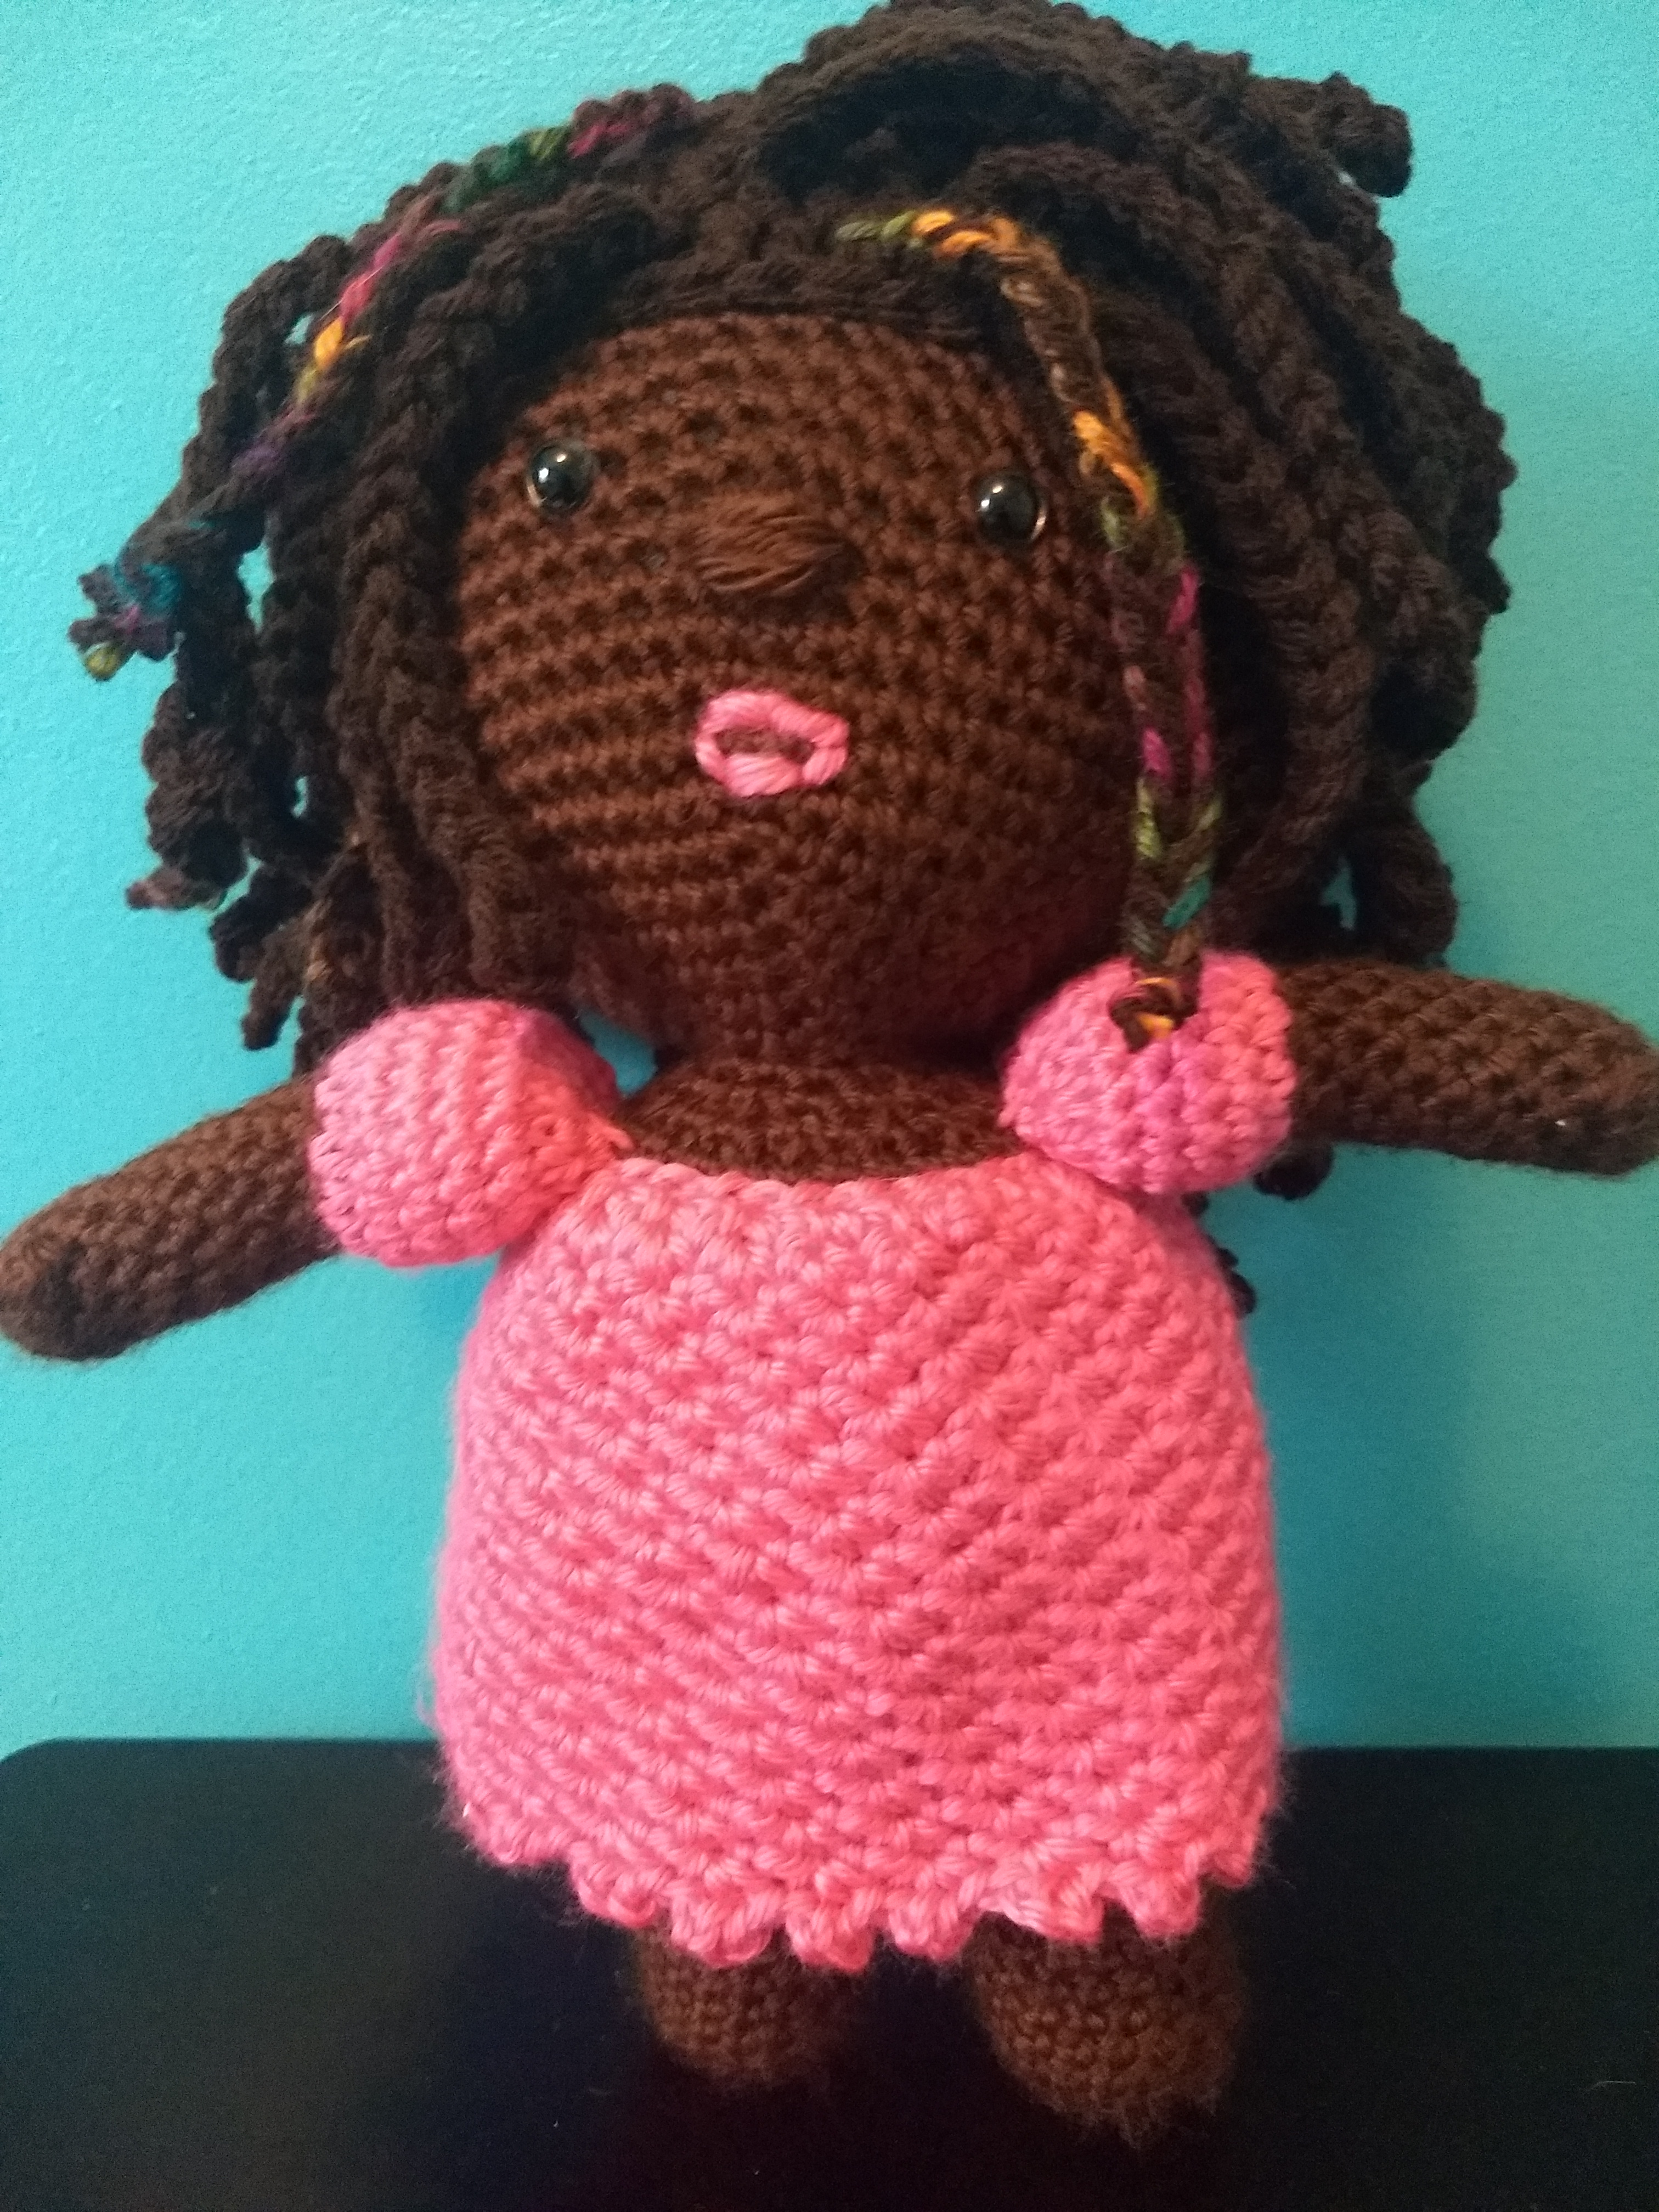 handmade deaf doll with chocolate skin, braids, and hot pink dress; plush deaf dolls with hearing aids and cochlear implants